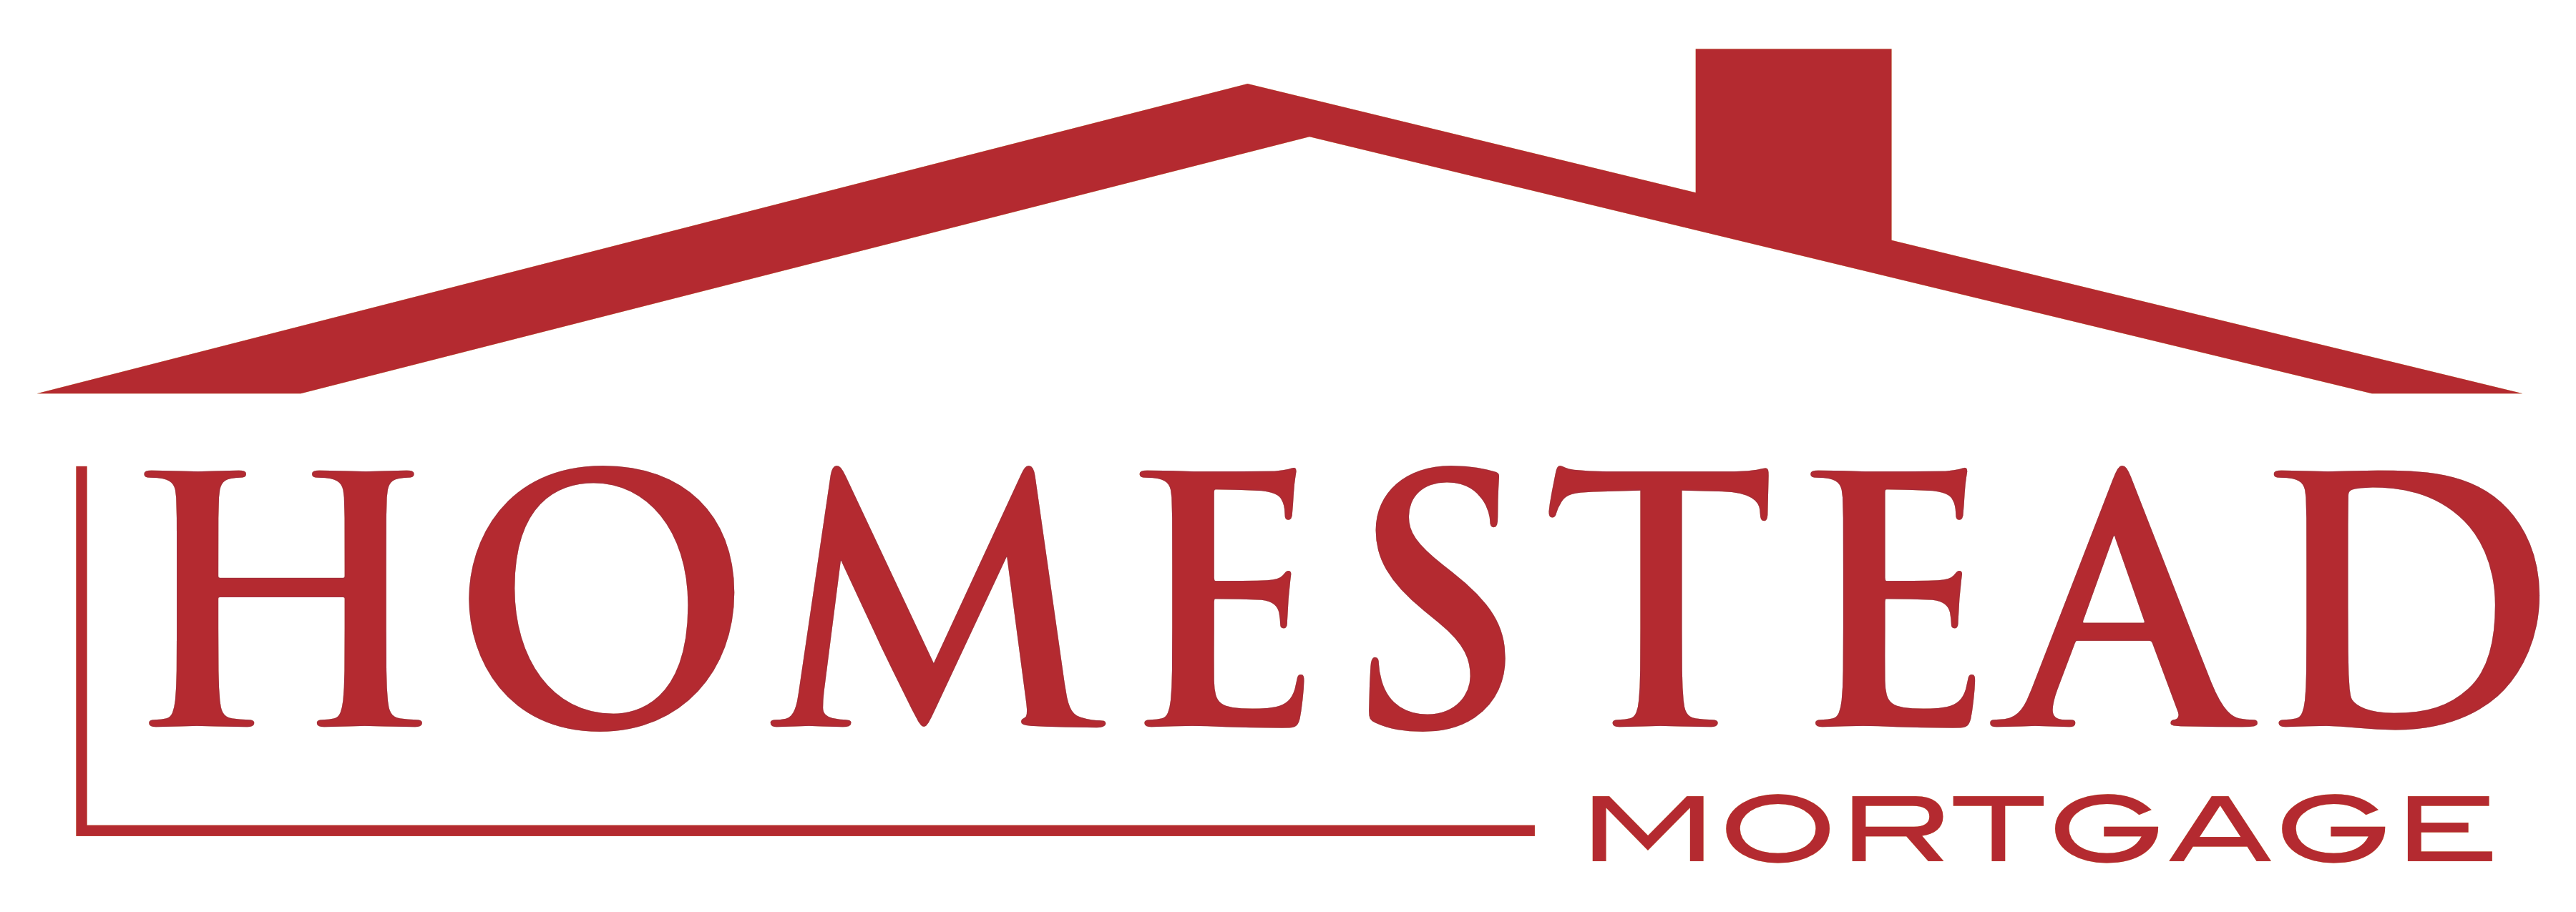 Homestead Mortgage, LLC